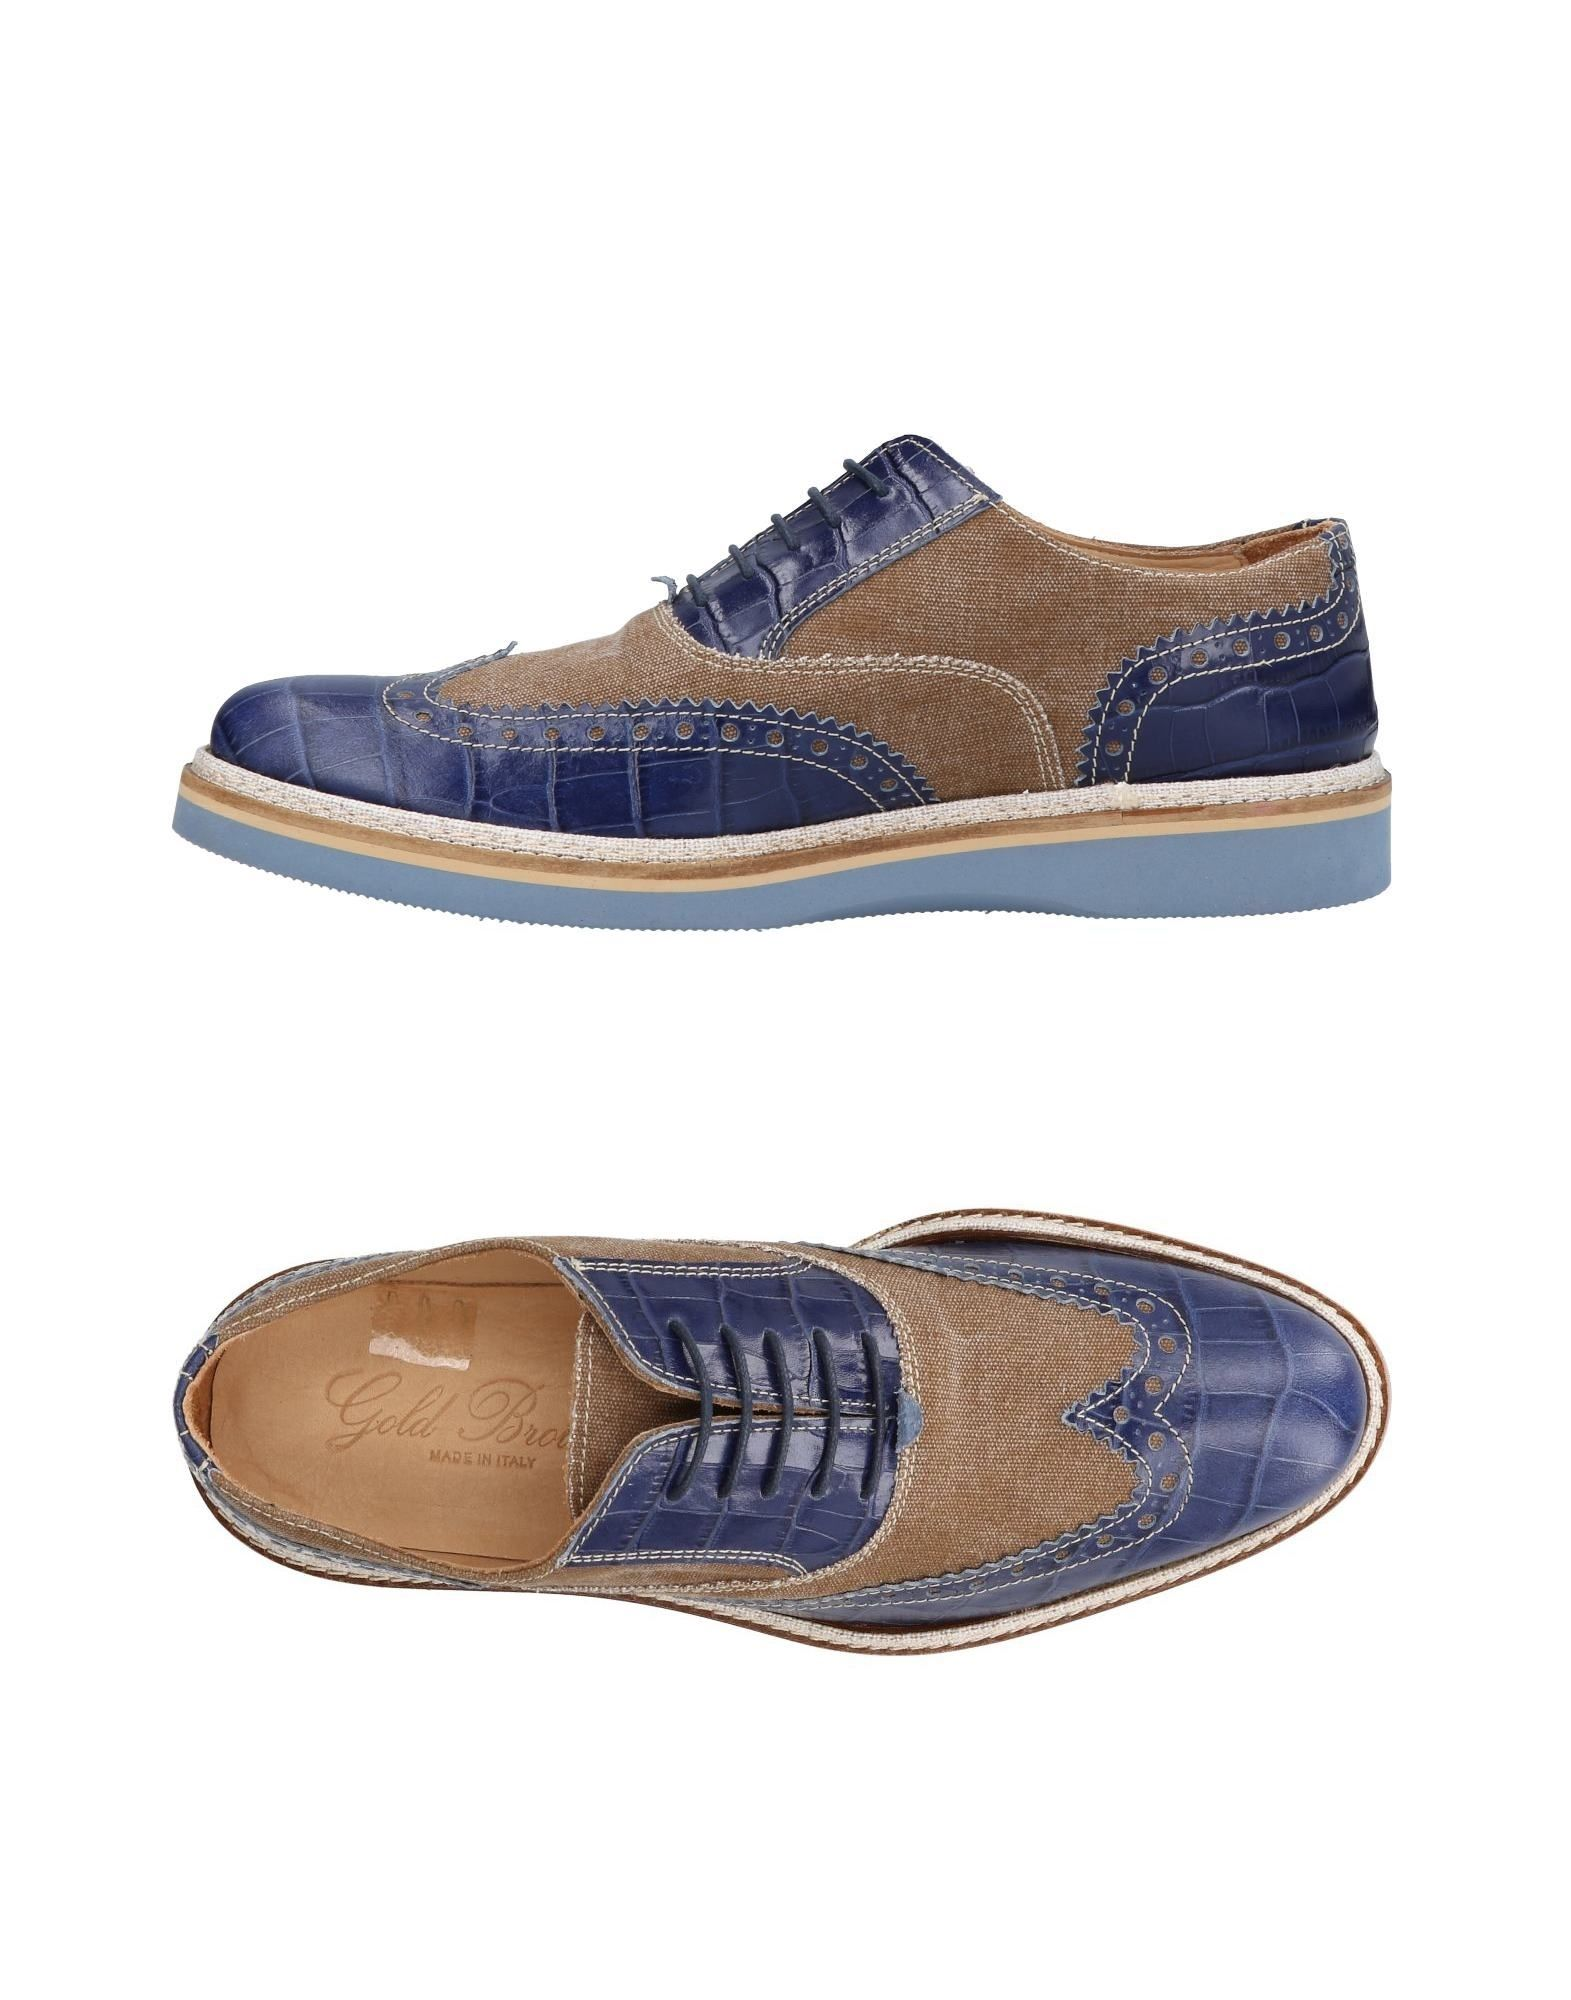 Chaussures À Lacets Gold Brothers Homme - Chaussures À Lacets Gold Brothers sur